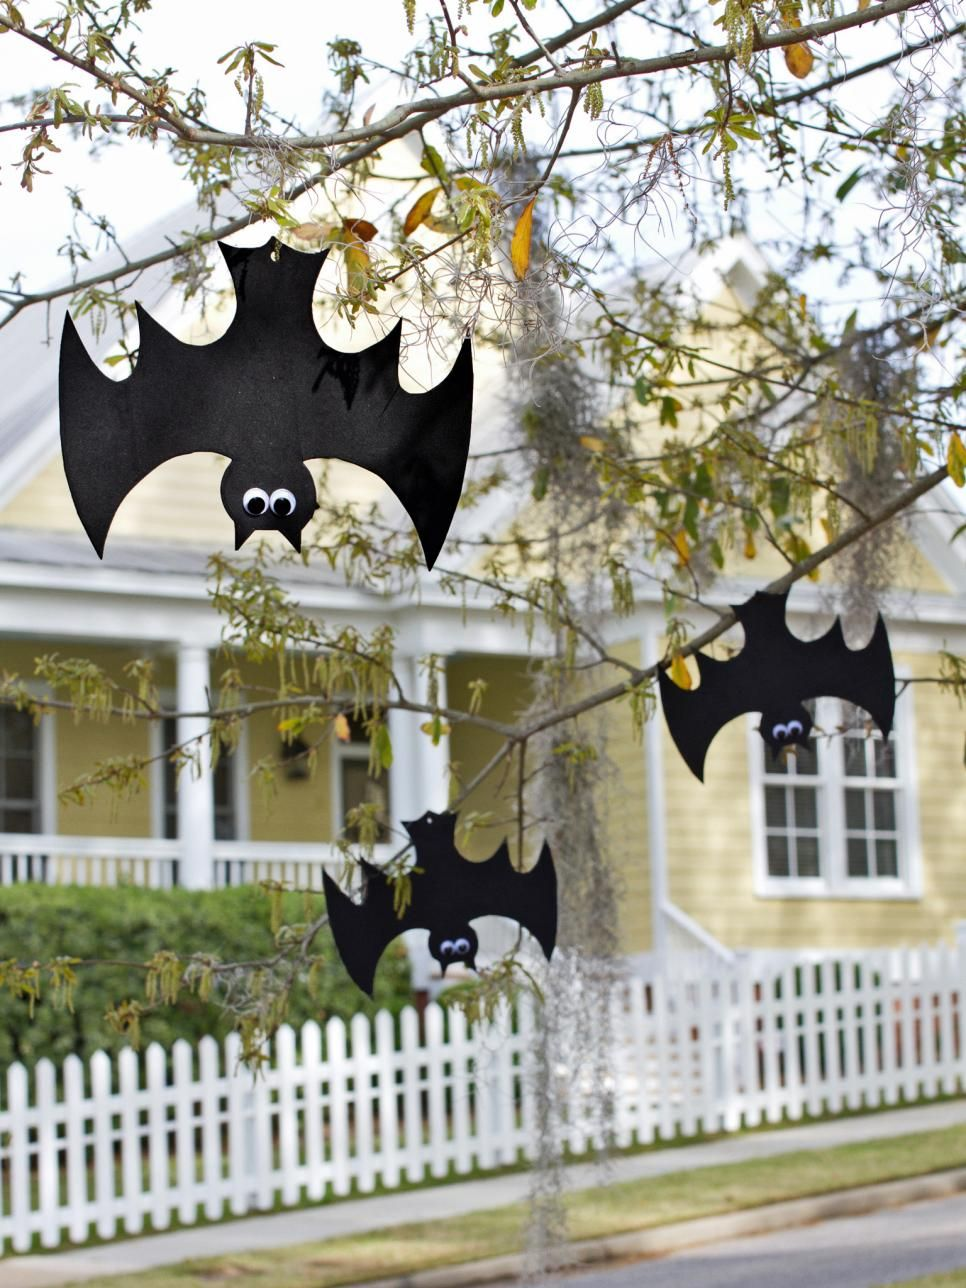 The Halloween crafting experts at HGTV share 30 Halloween crafts - How To Make Halloween Decorations